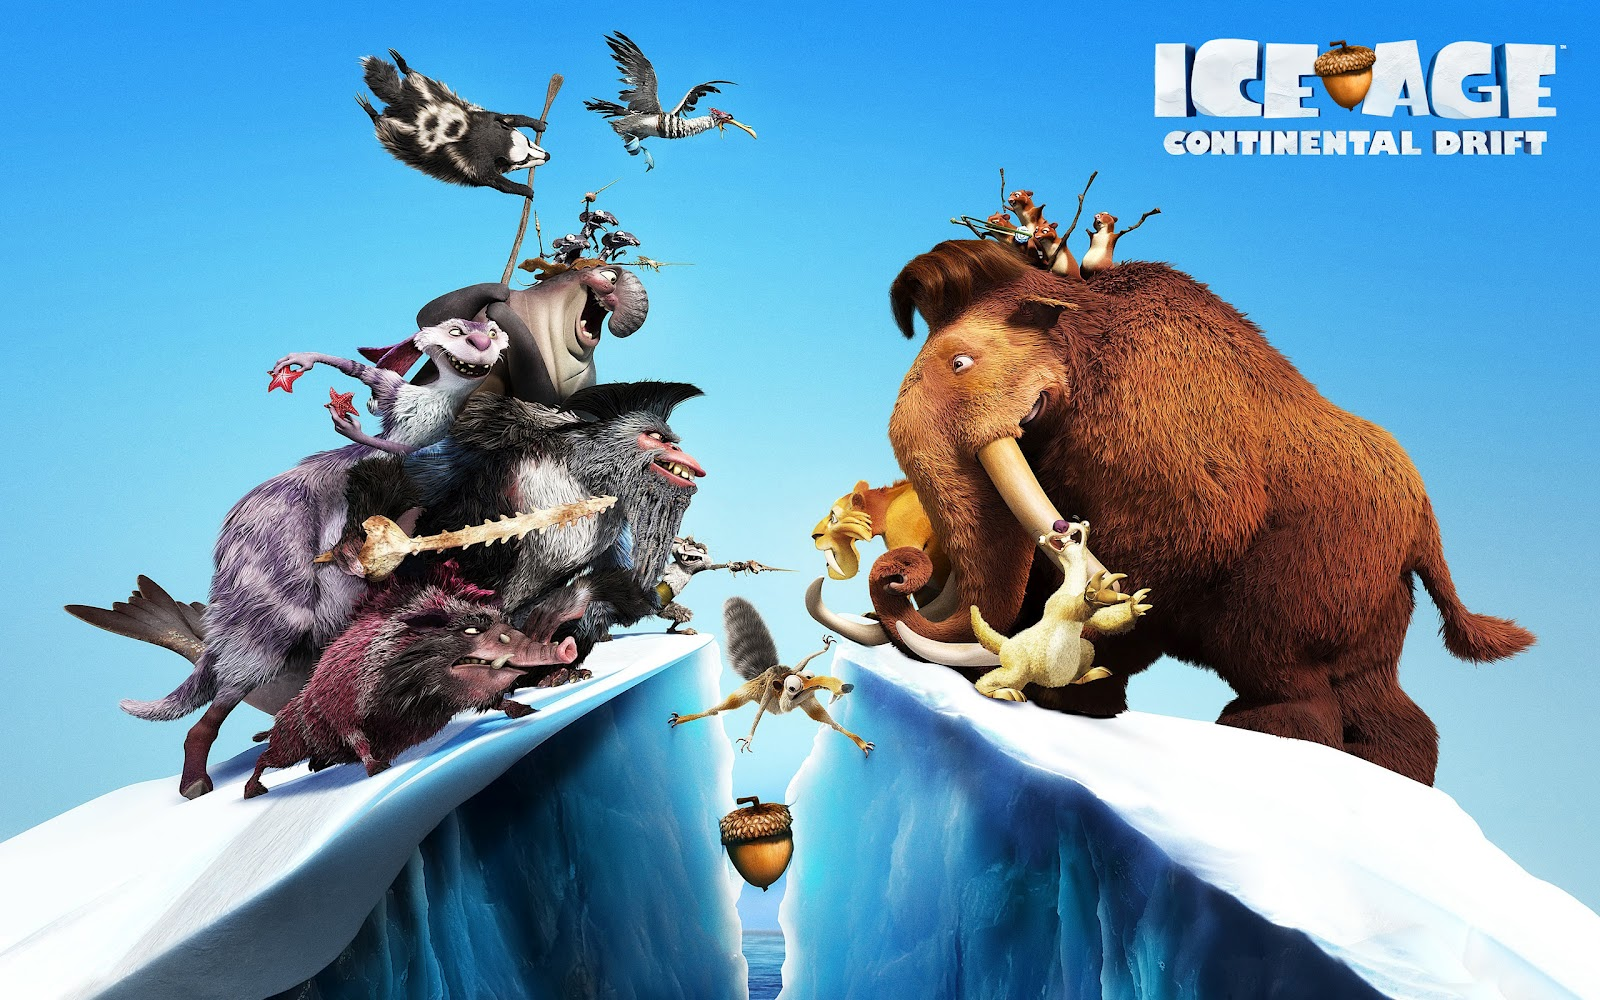 You,me and cinema: Ice Age 4: Continental Drift - Review